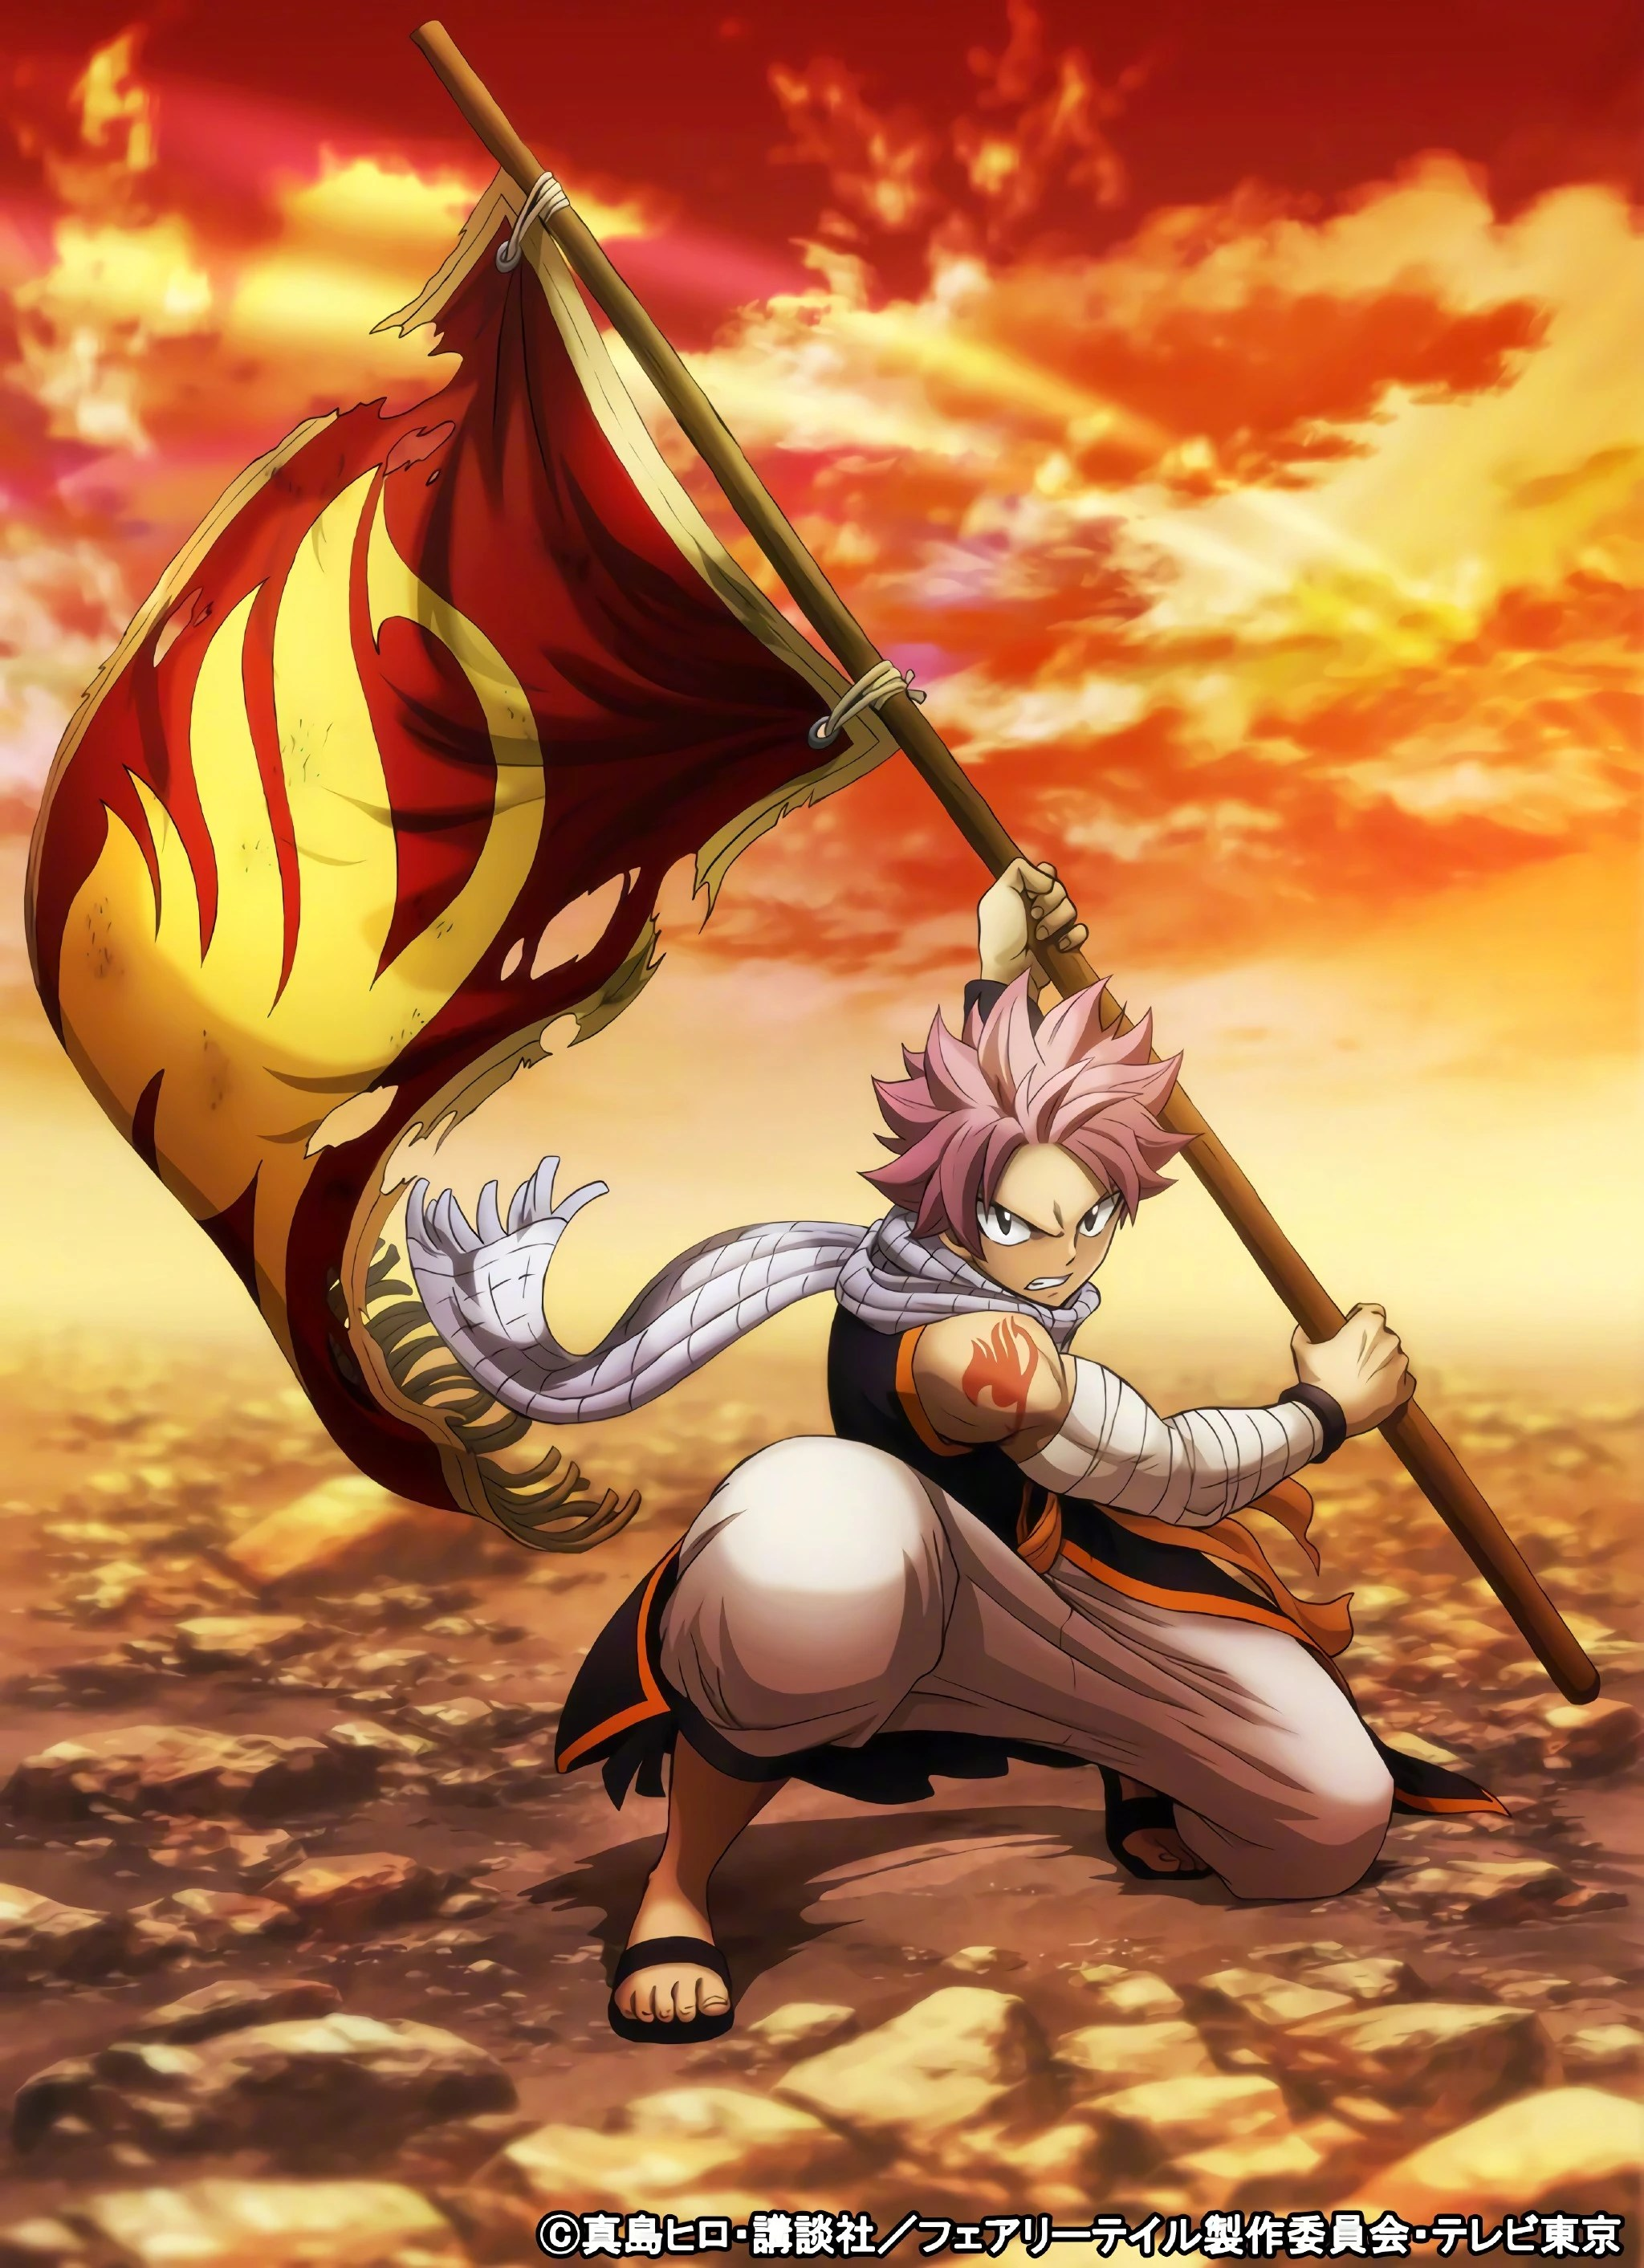 Image result for fairy tail final season poster